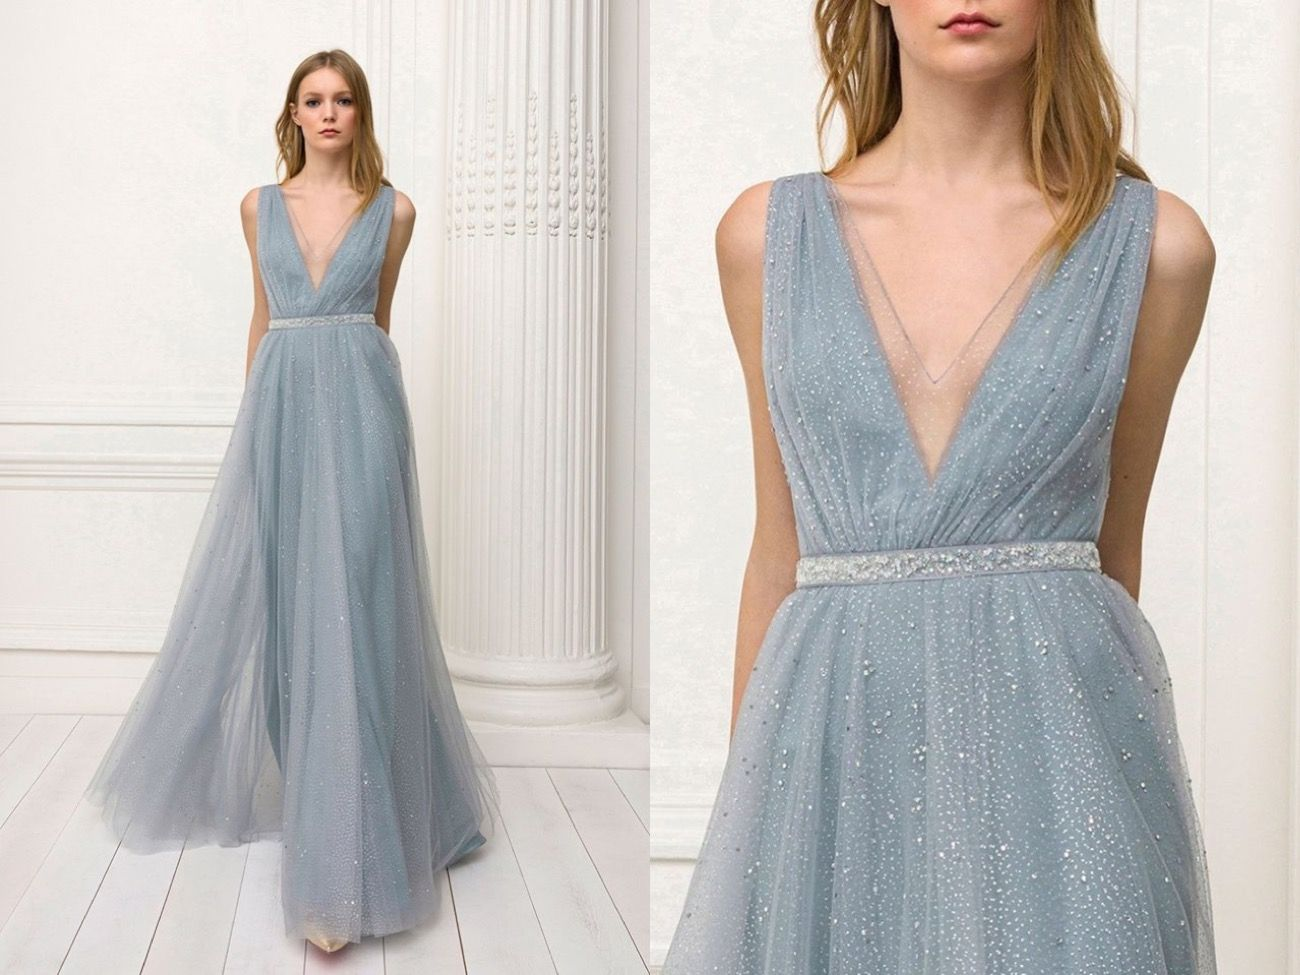 Jenny Packham This Dusty Blue Gown Is Sprinkled With Shimmering Details Allover Floral Mini Dress Outfit Dusty Blue Dress Elegant White Dress [ 975 x 1300 Pixel ]